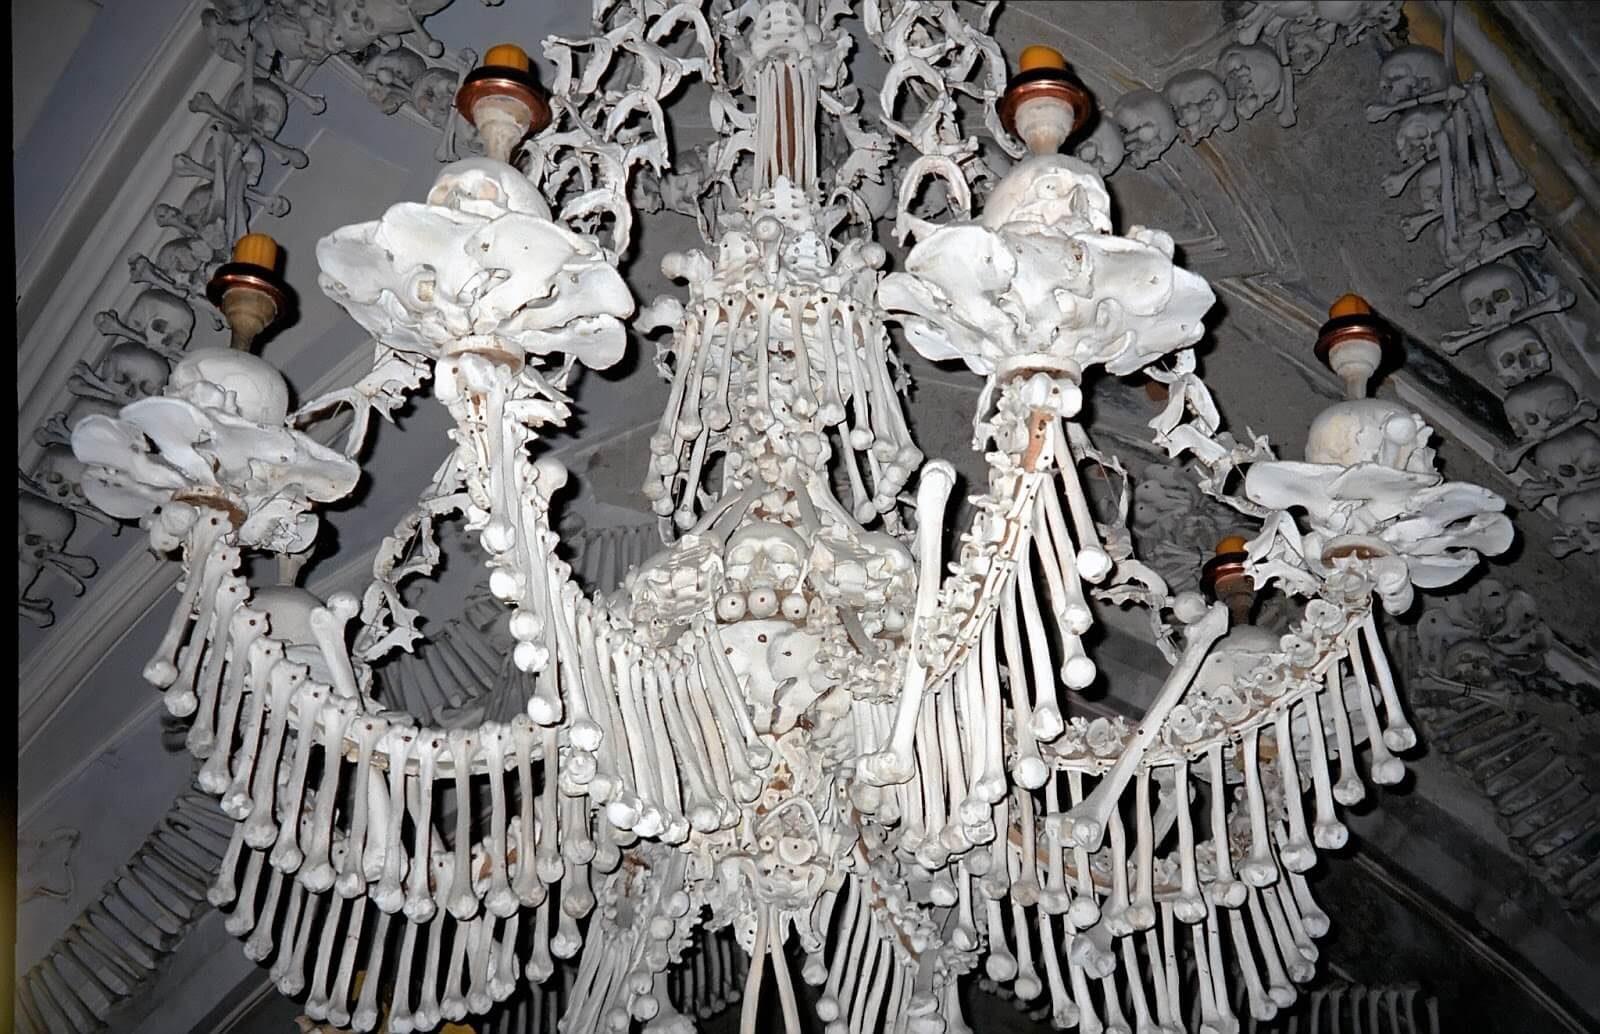 This chandelier at Sedlec Ossuary in Kutna Hora, the Czech Republic, contains at least one of every bone in the human body